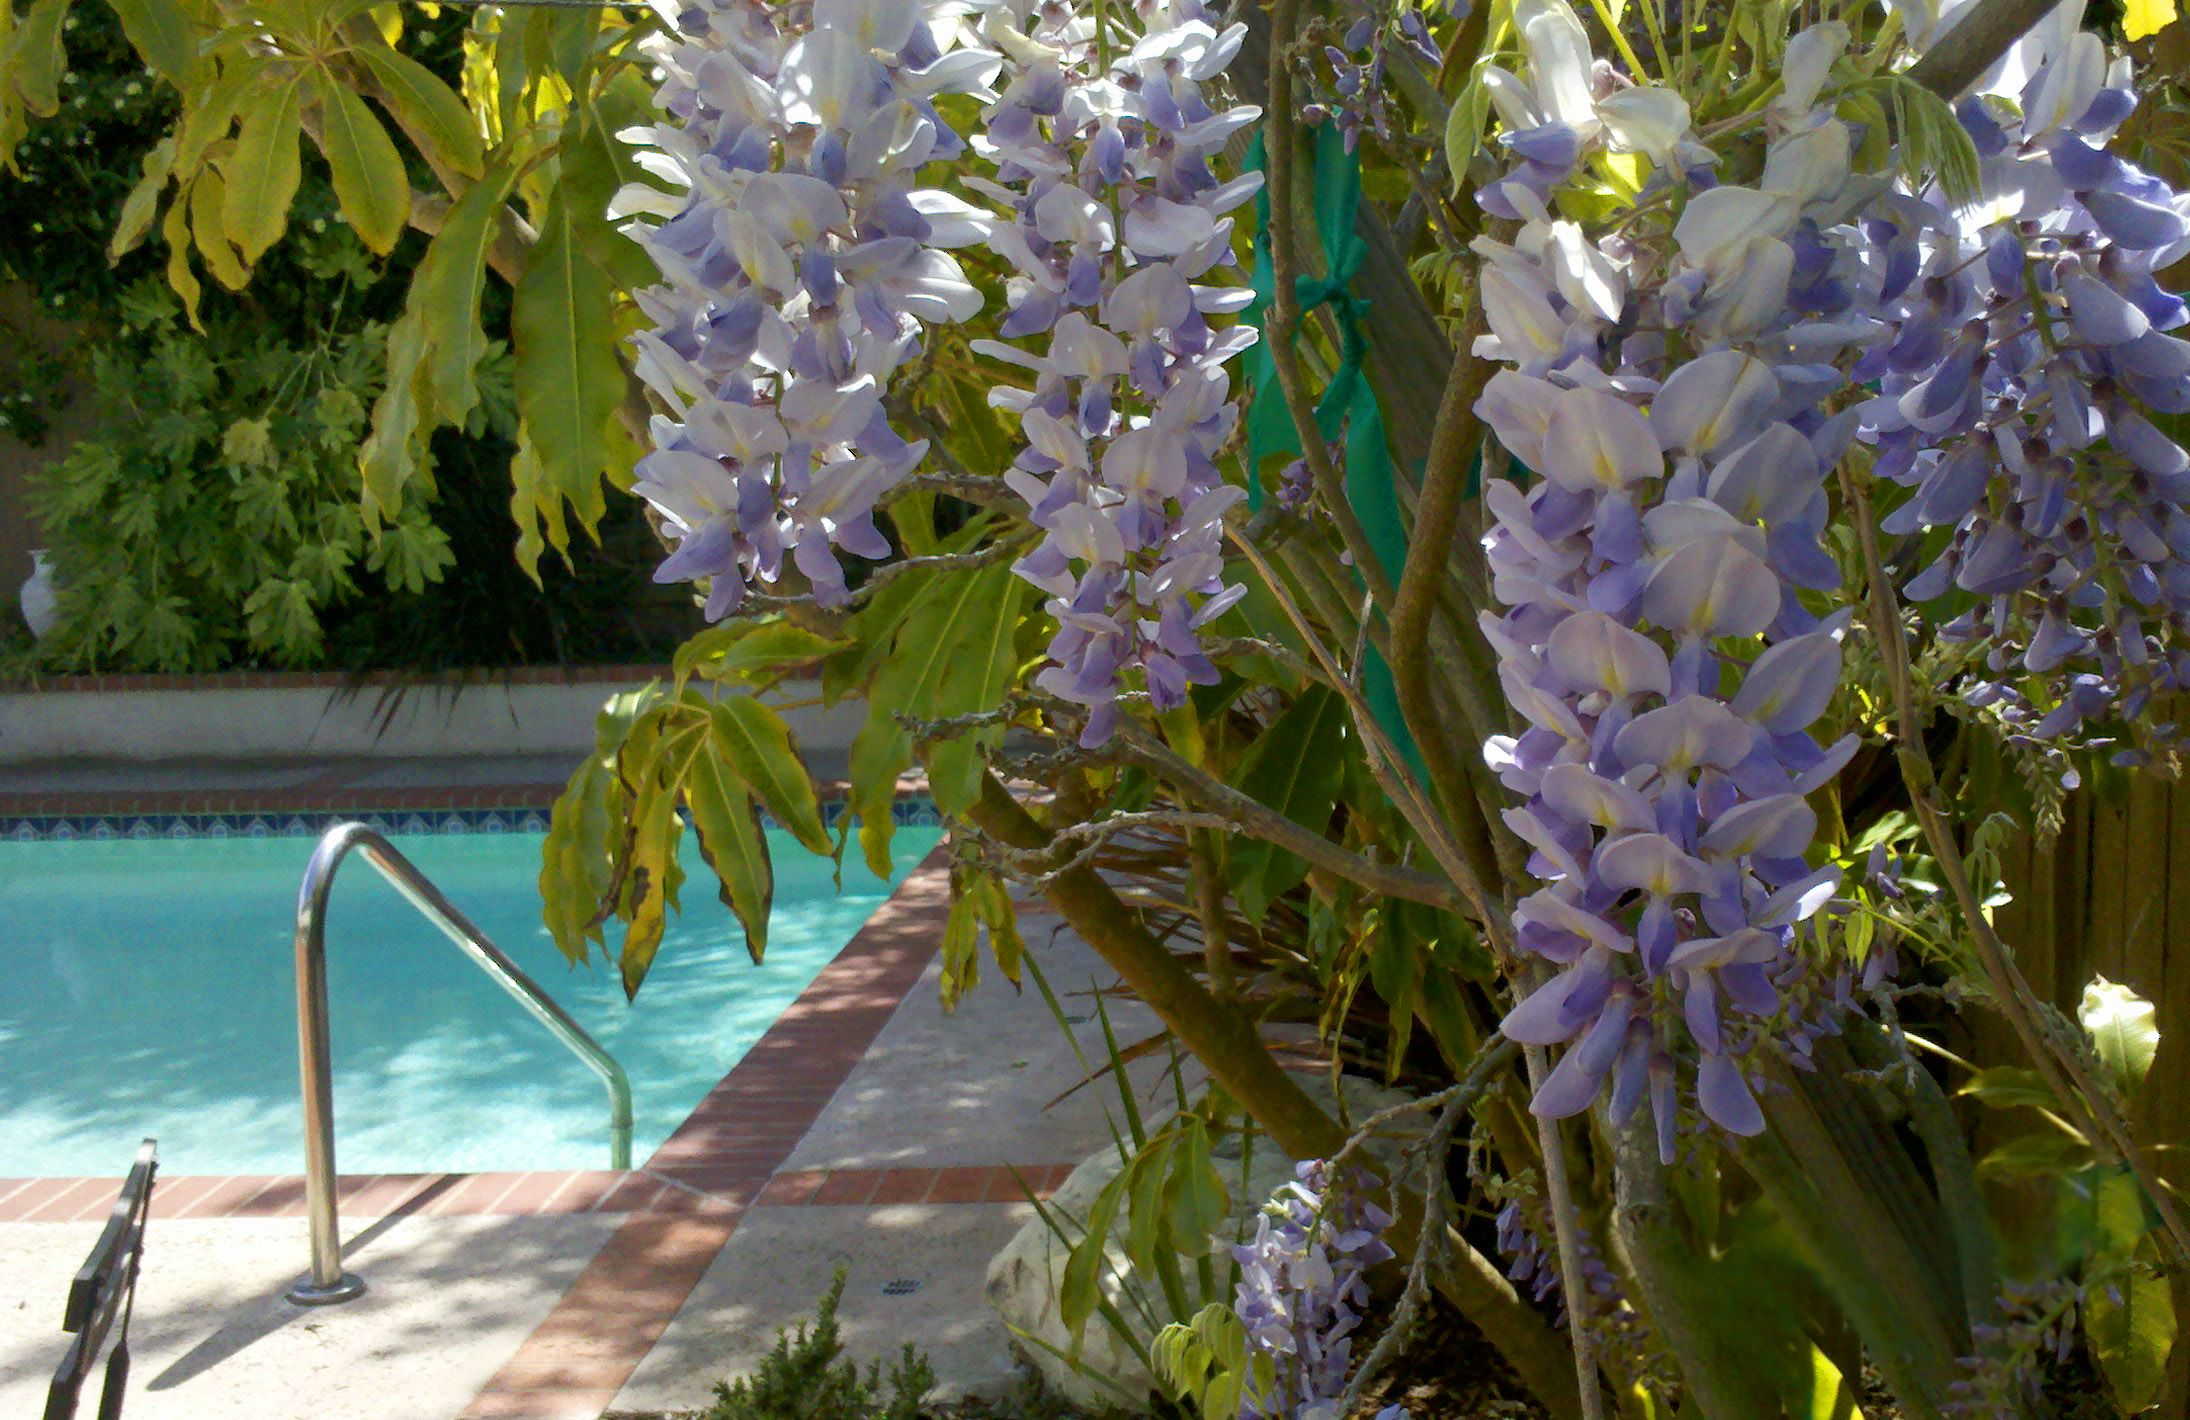 My Wisteria No Squirrels This Year Eating The Flower Buds Flower Bud Plants Flowers